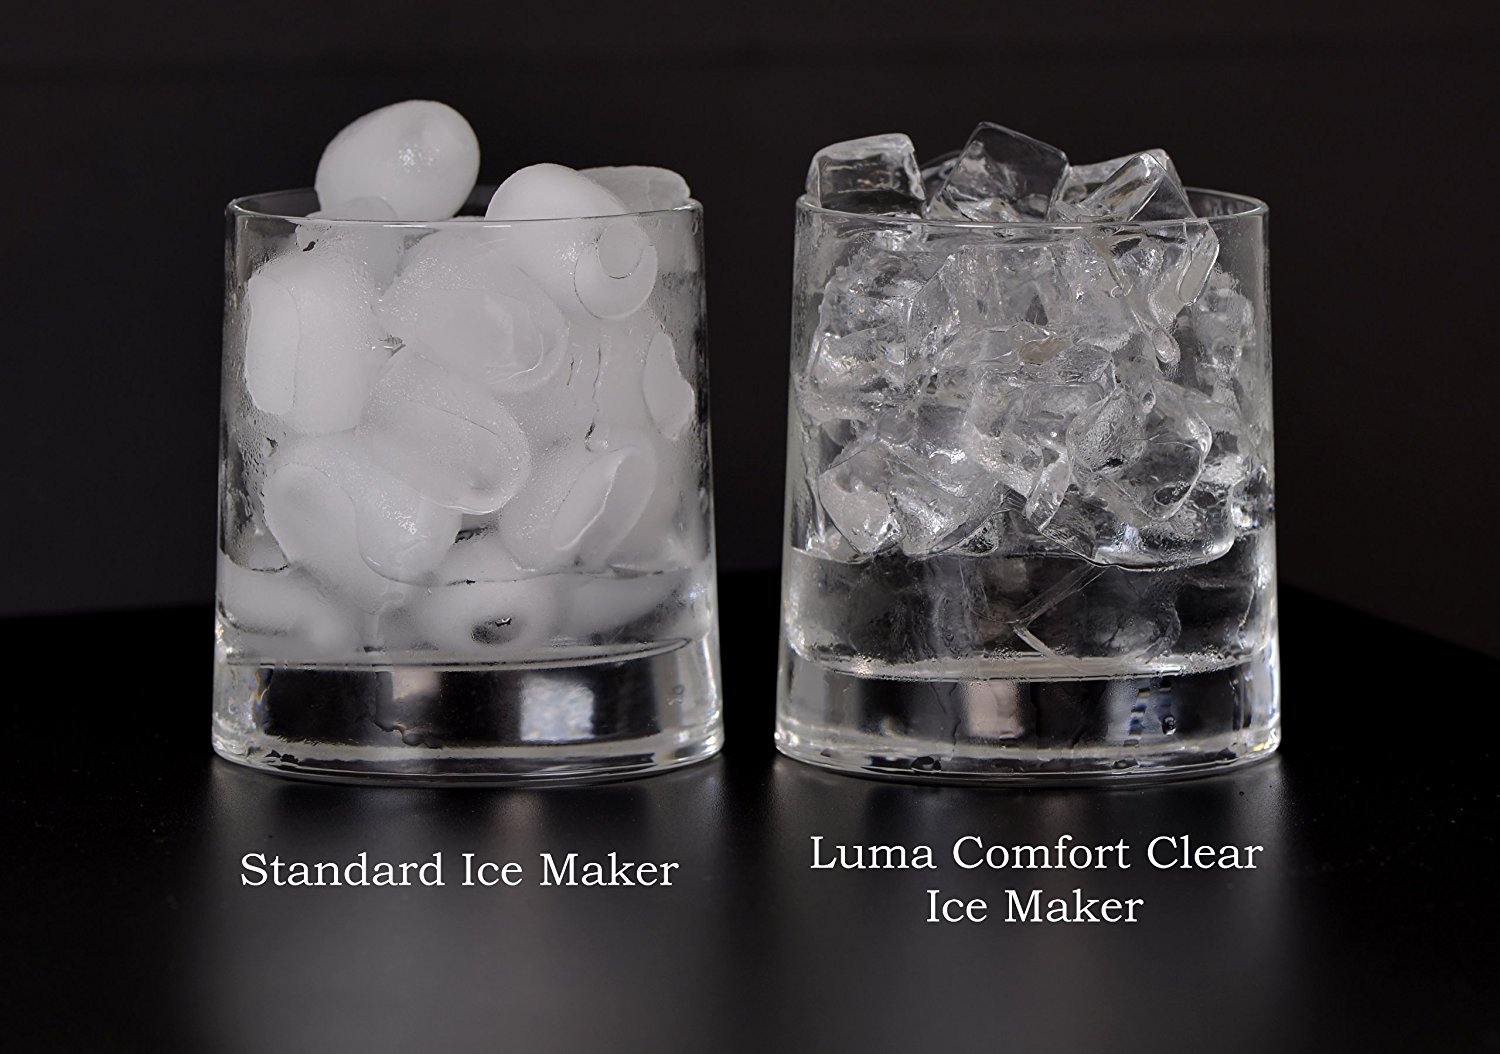 Luma Comfort IM200SS Portable Clear Ice Maker Review (2018)